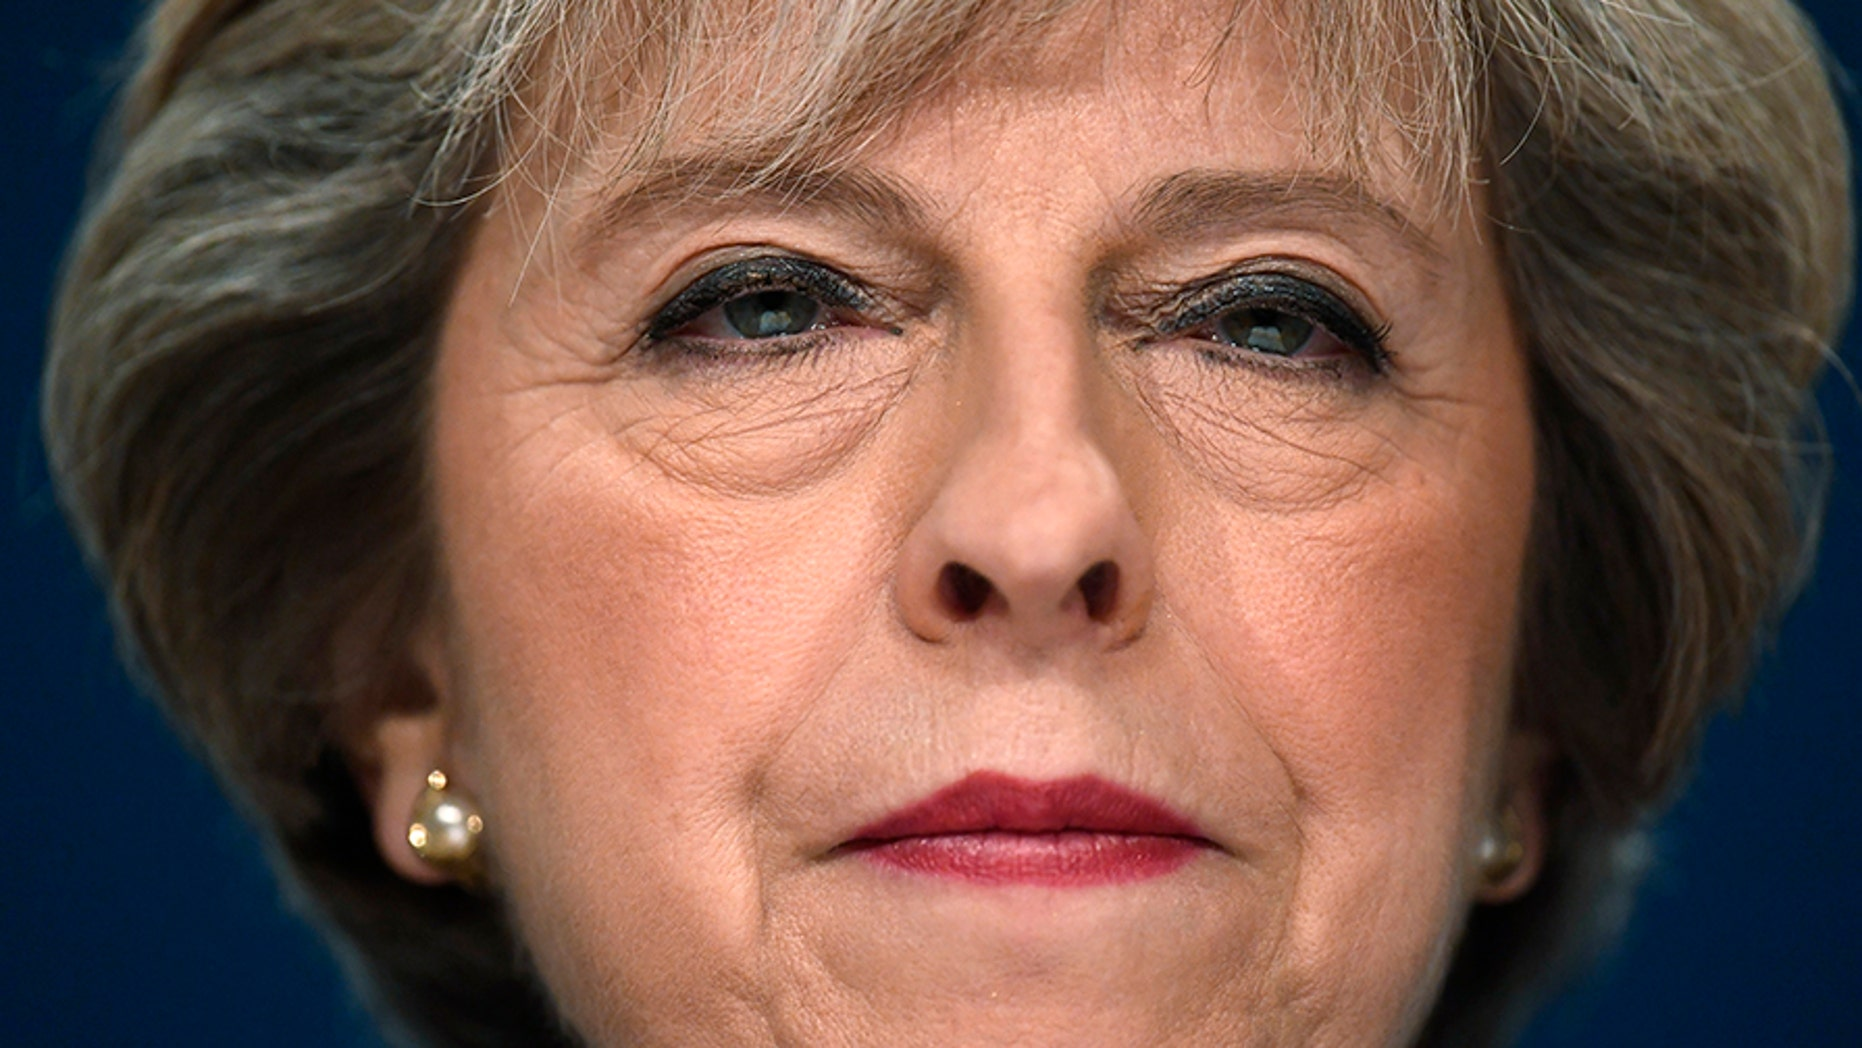 An alleged terror plot to assassinate British Prime Minister Theresa May has reportedly been thwarted.